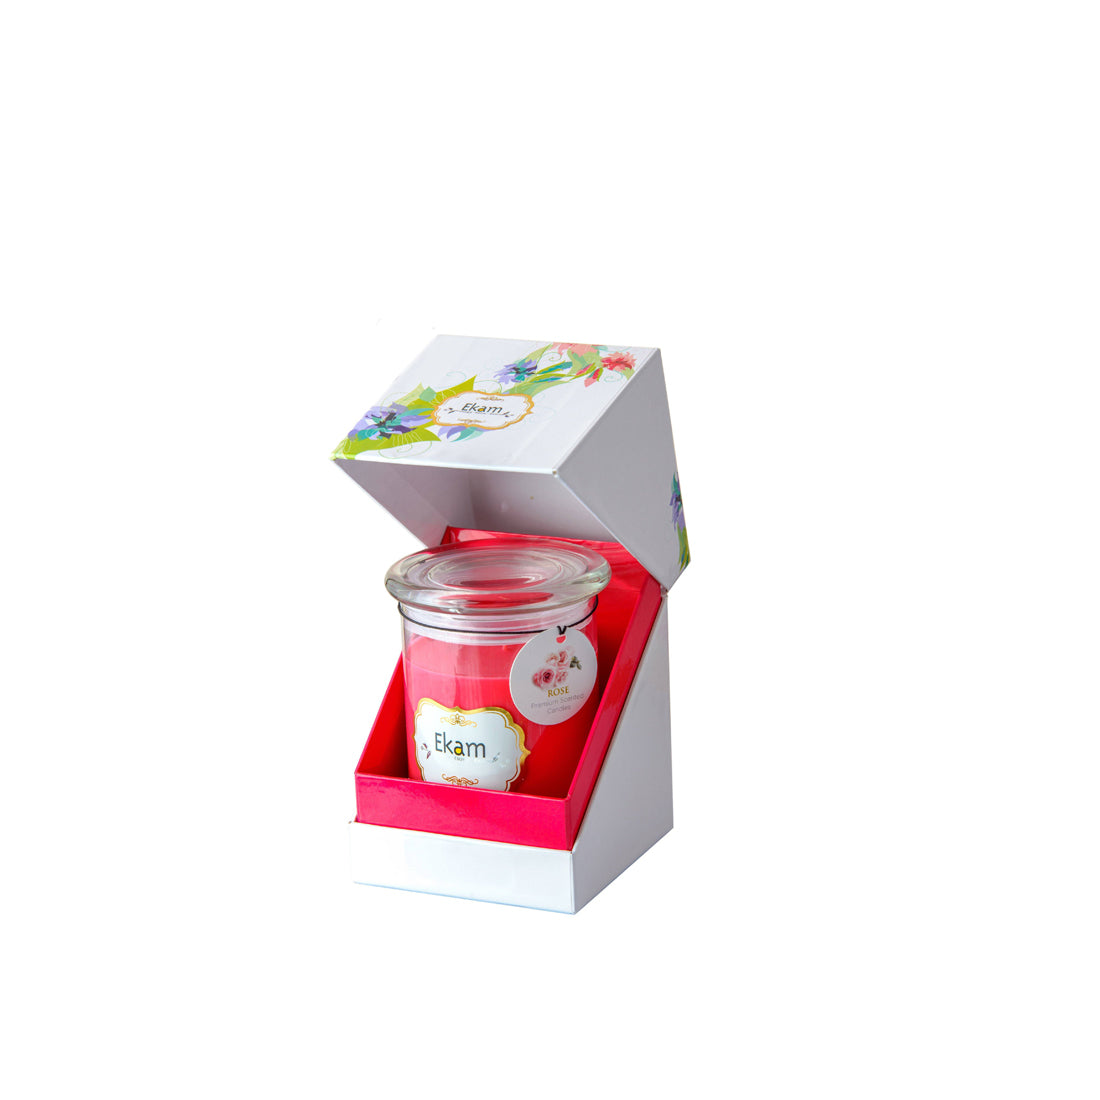 Ekam Jar Candle | Rose Fragrance Candle